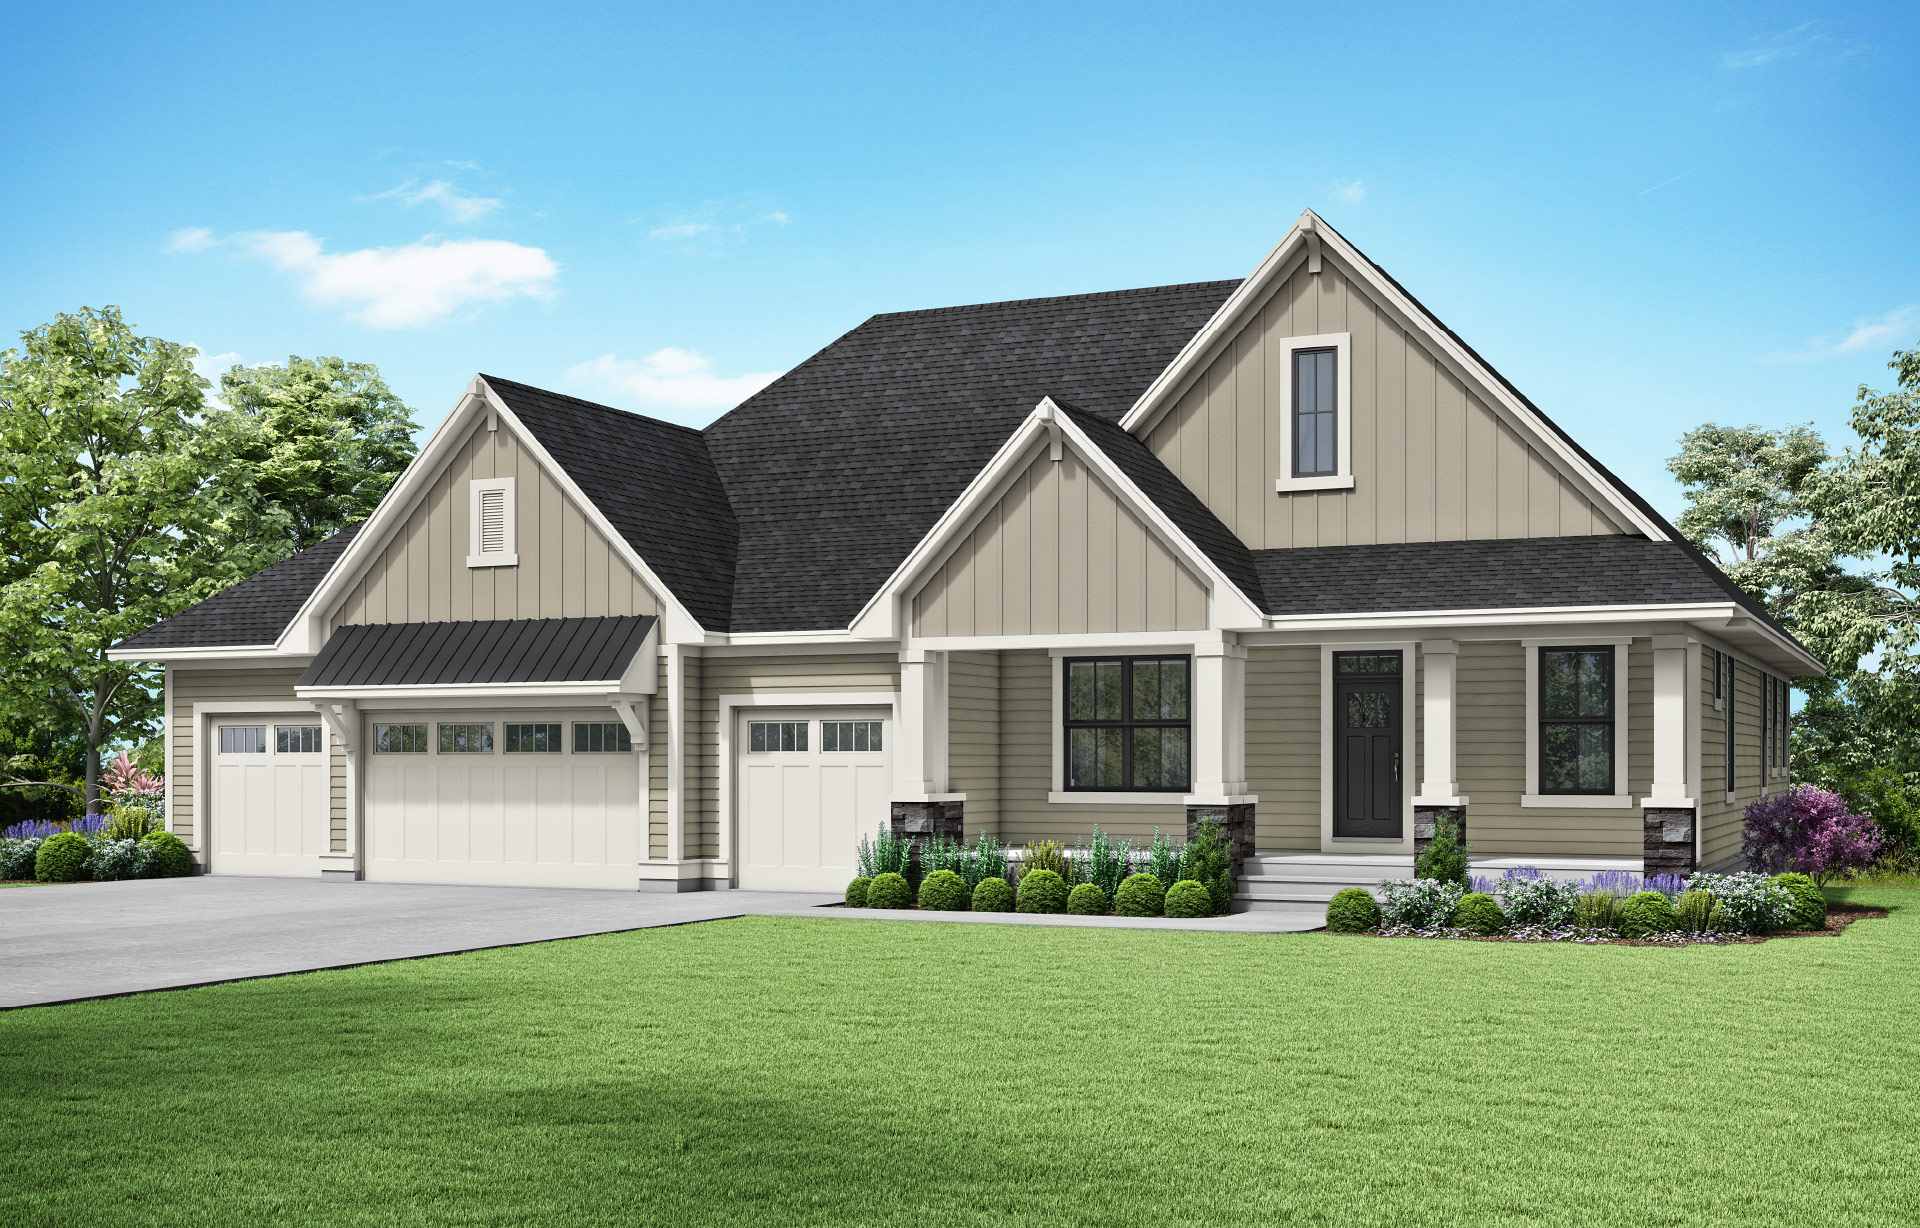 Current Projects Custom Home Builders Amp New Home Communities In Lakeville And Minneapolis Mn